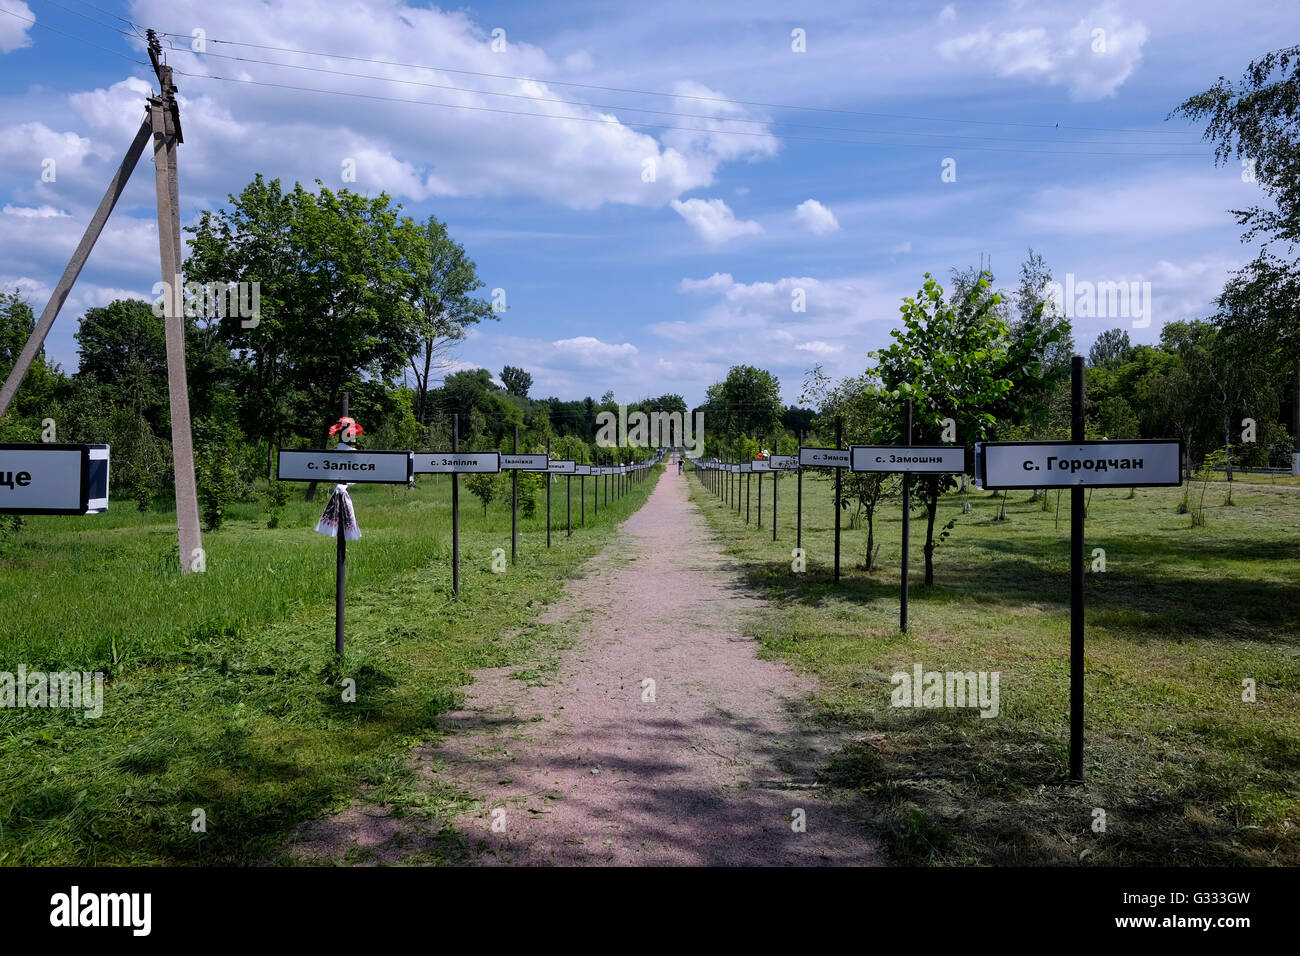 A man walks past the plates with names of abandoned villages at the monument to the Chernobyl nuclear disaster in - Stock Image